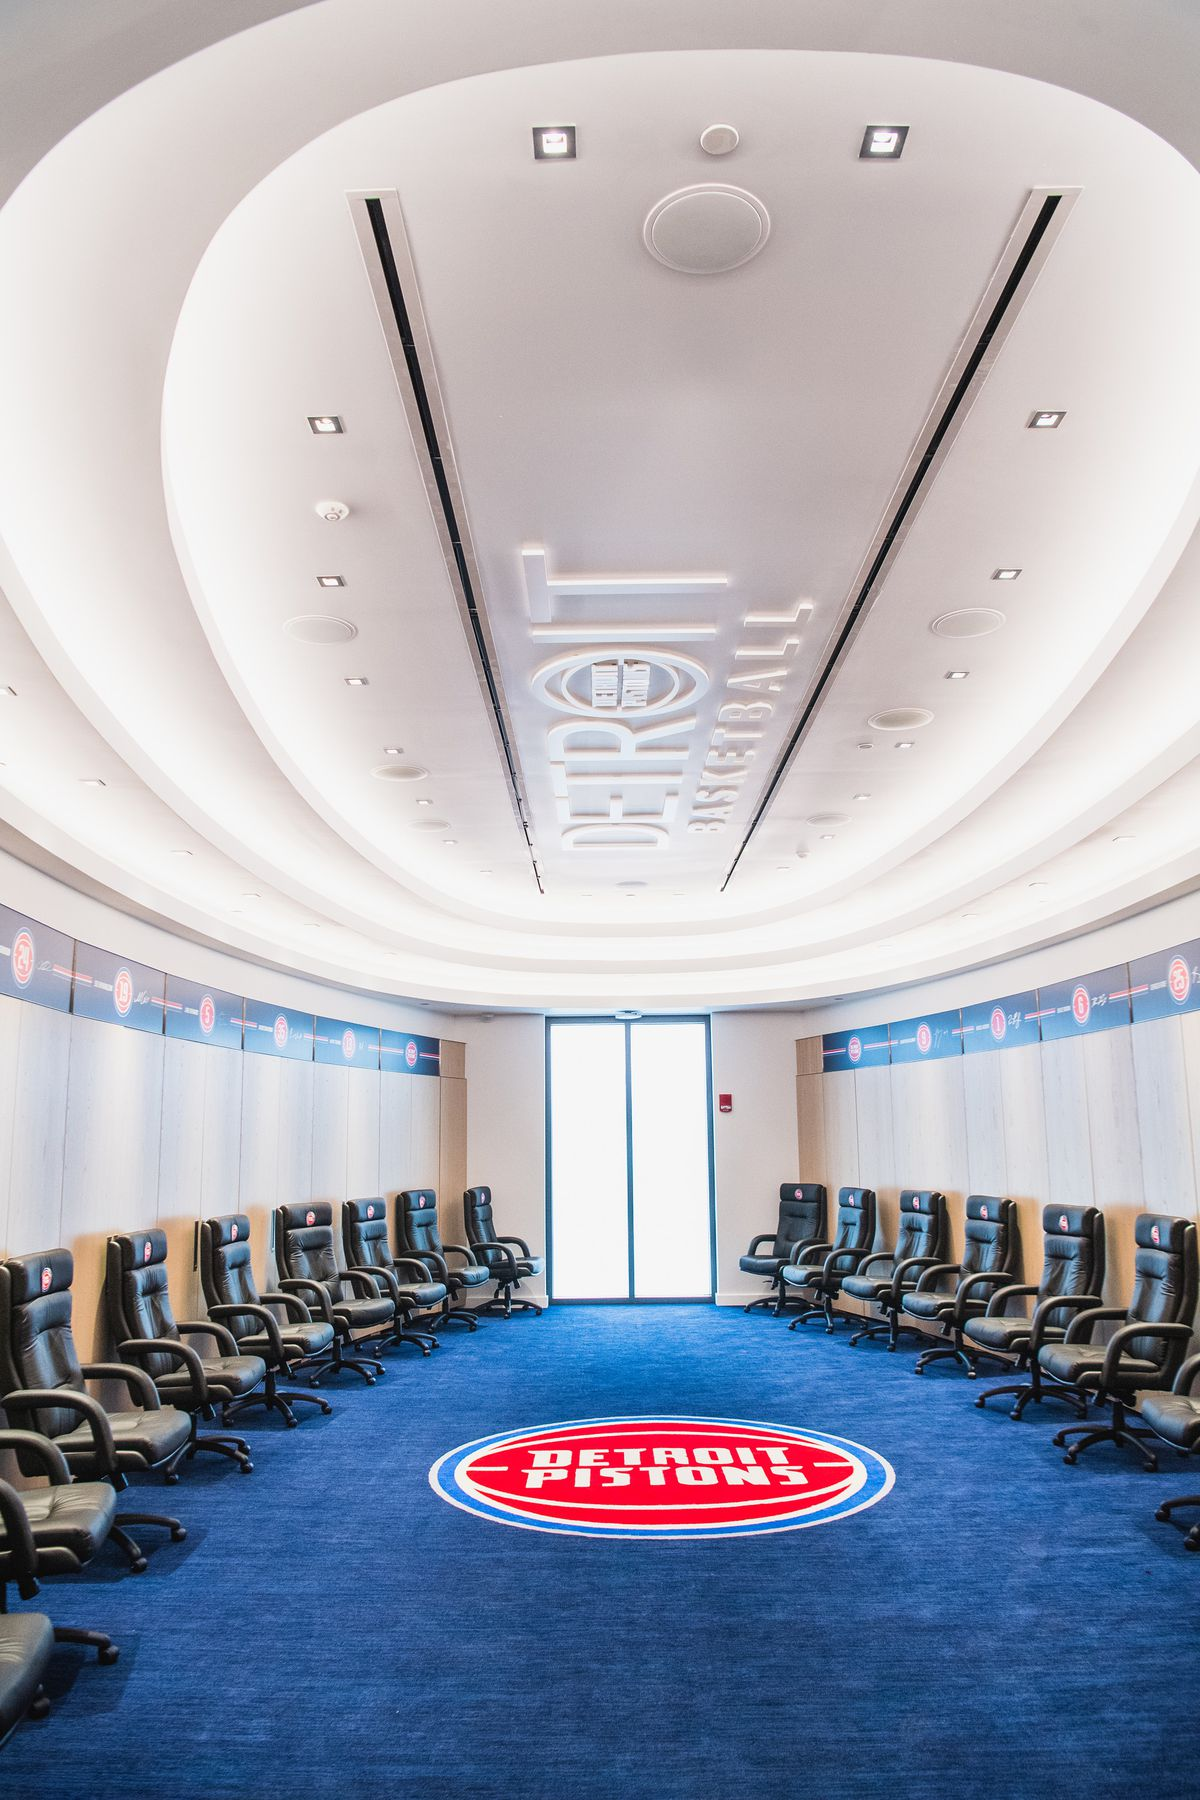 Two rows of black chairs sit opposite each other. On the carpeted floor is the Detroit Pistons logo.